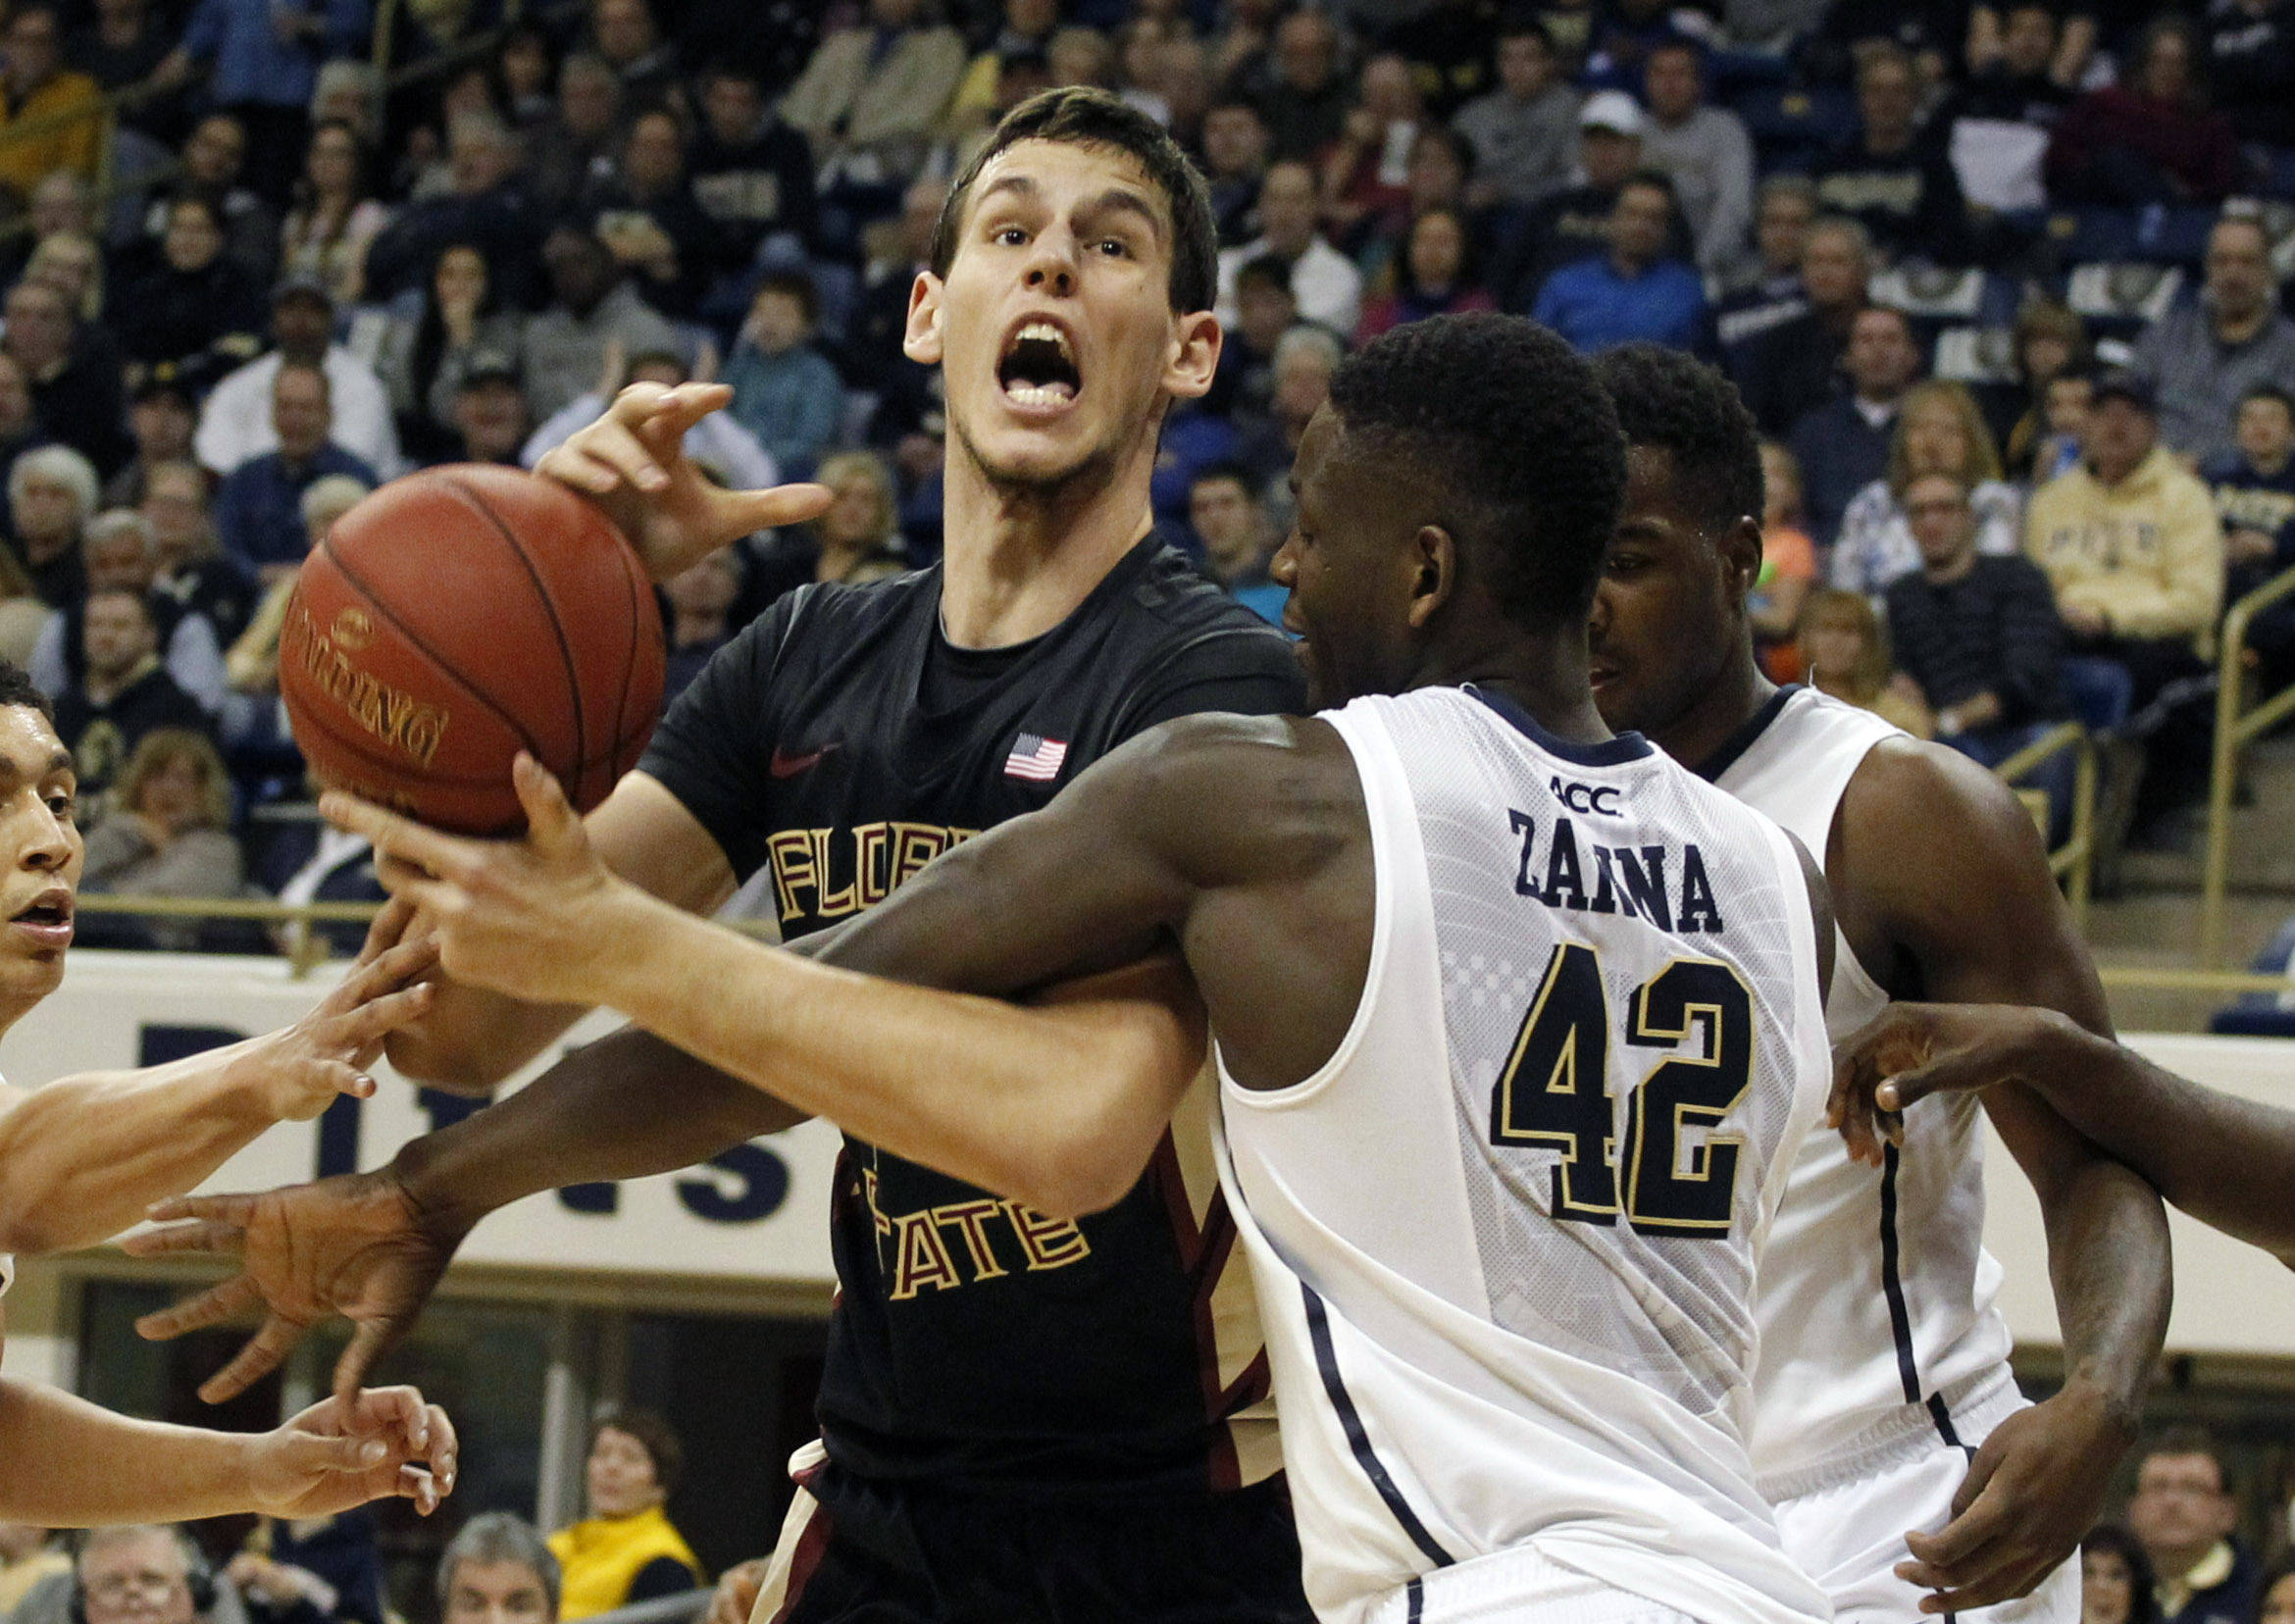 Florida State Seminoles center Boris Bojanovsky (left) reacts as he is fouled by Pittsburgh Panthers forward Talib Zanna (42) during the second half. (Charles LeClaire-USA TODAY Sports)